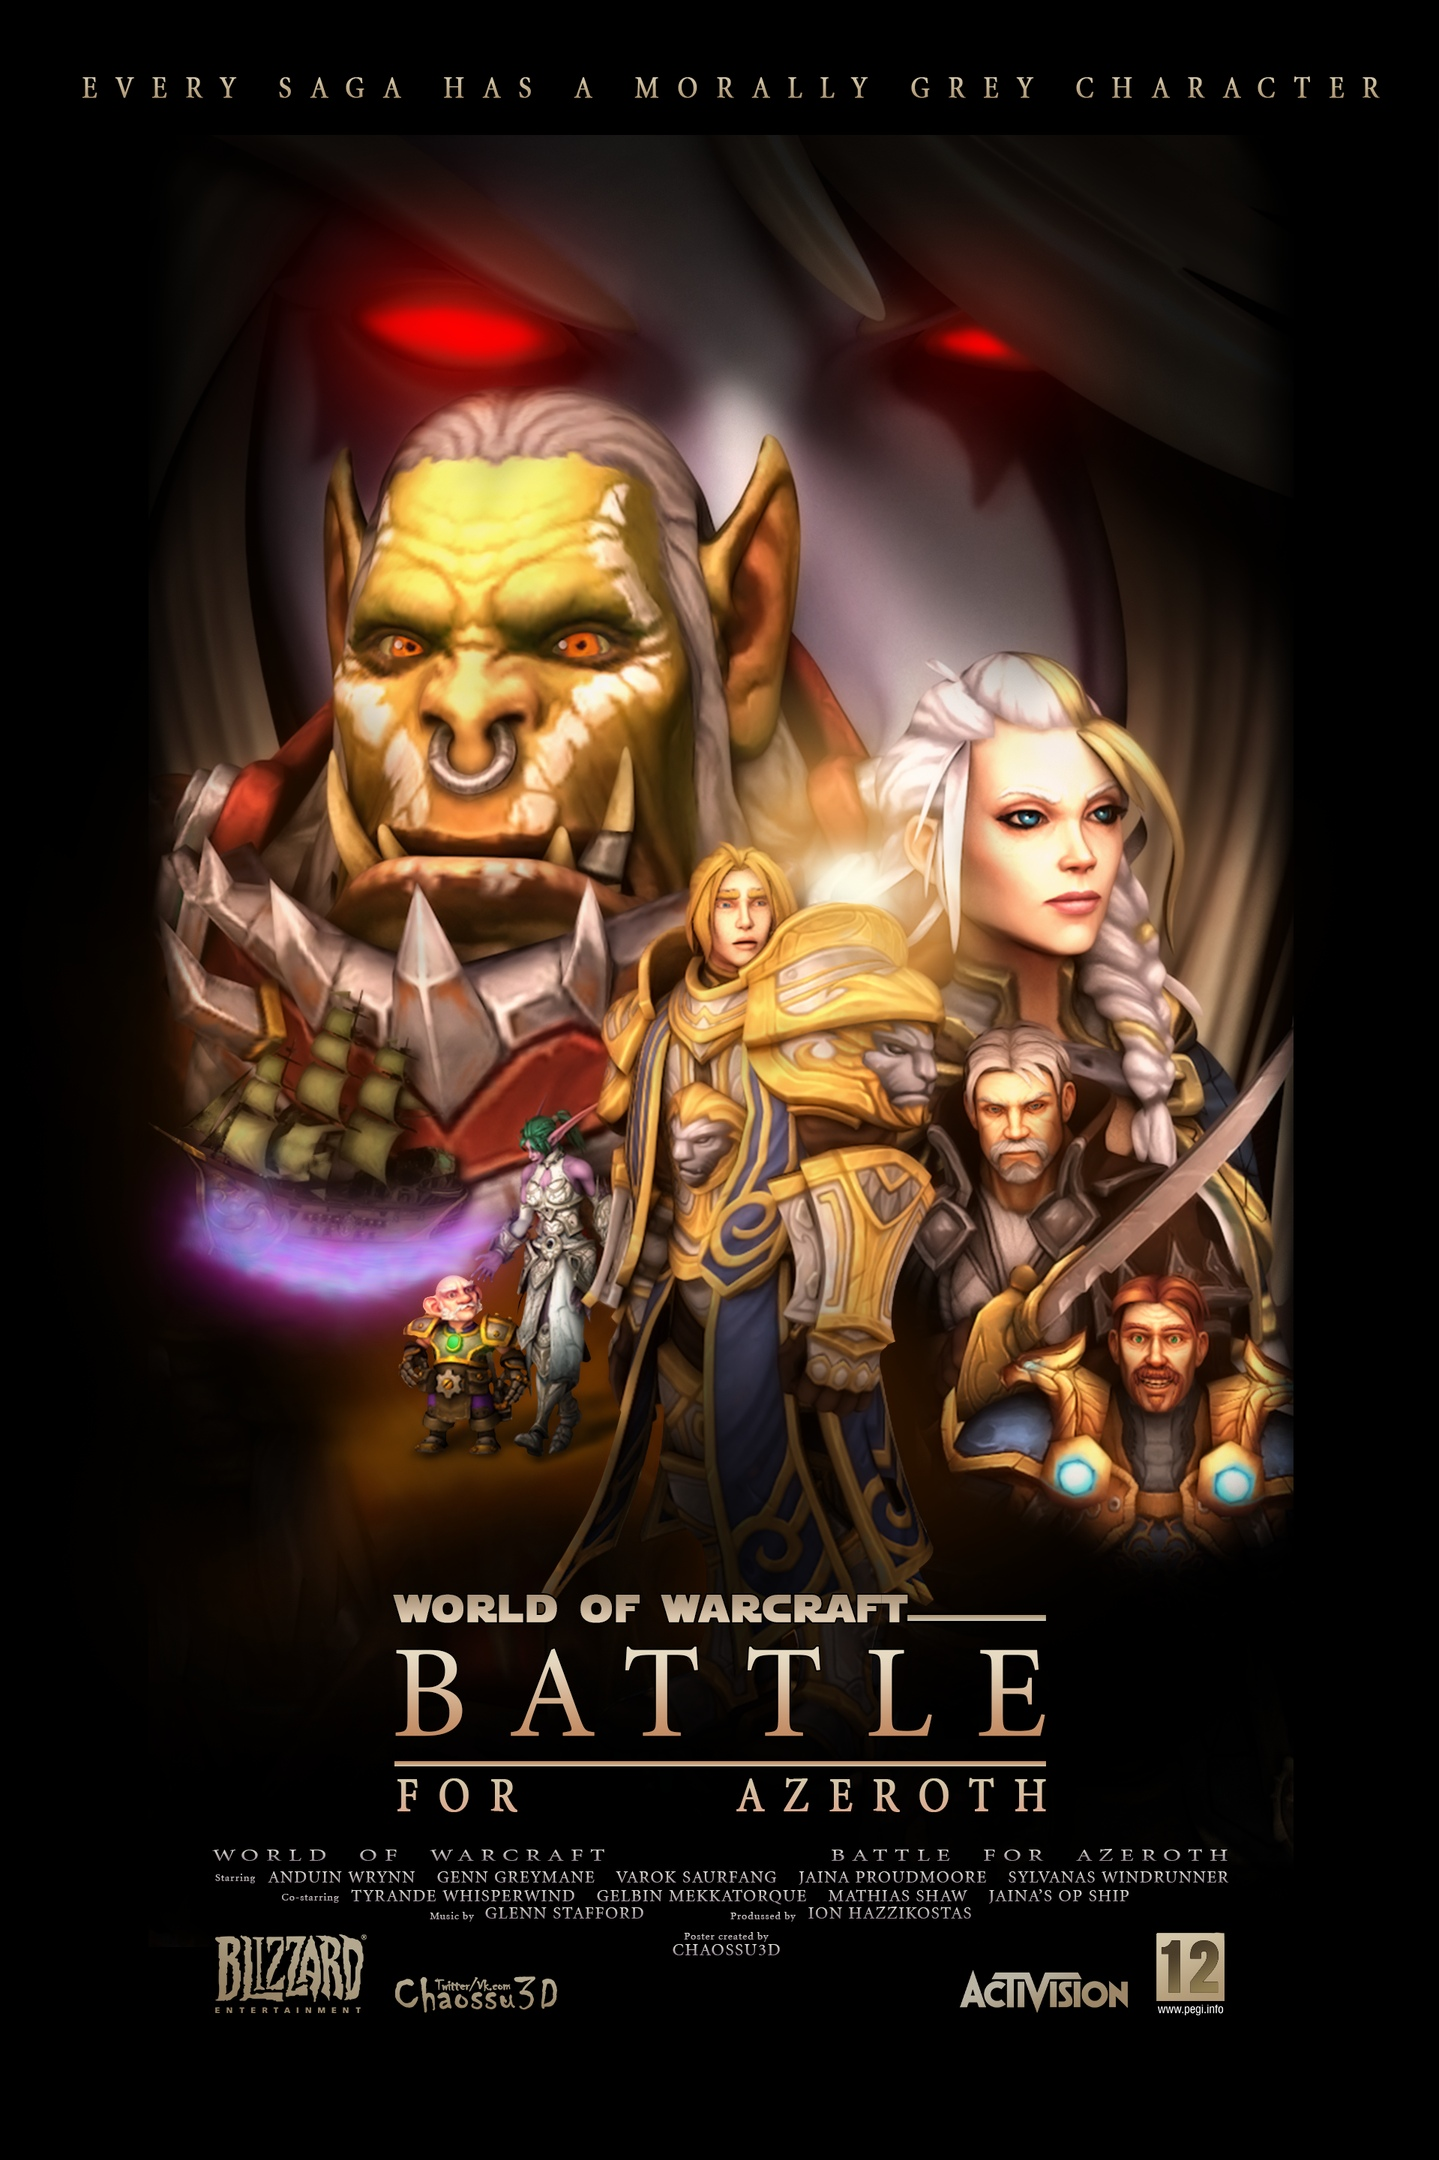 Revenge Of The Sith In Warcraft Iii The Artist Redid The Posters Of Star Wars Freemmorpg Top